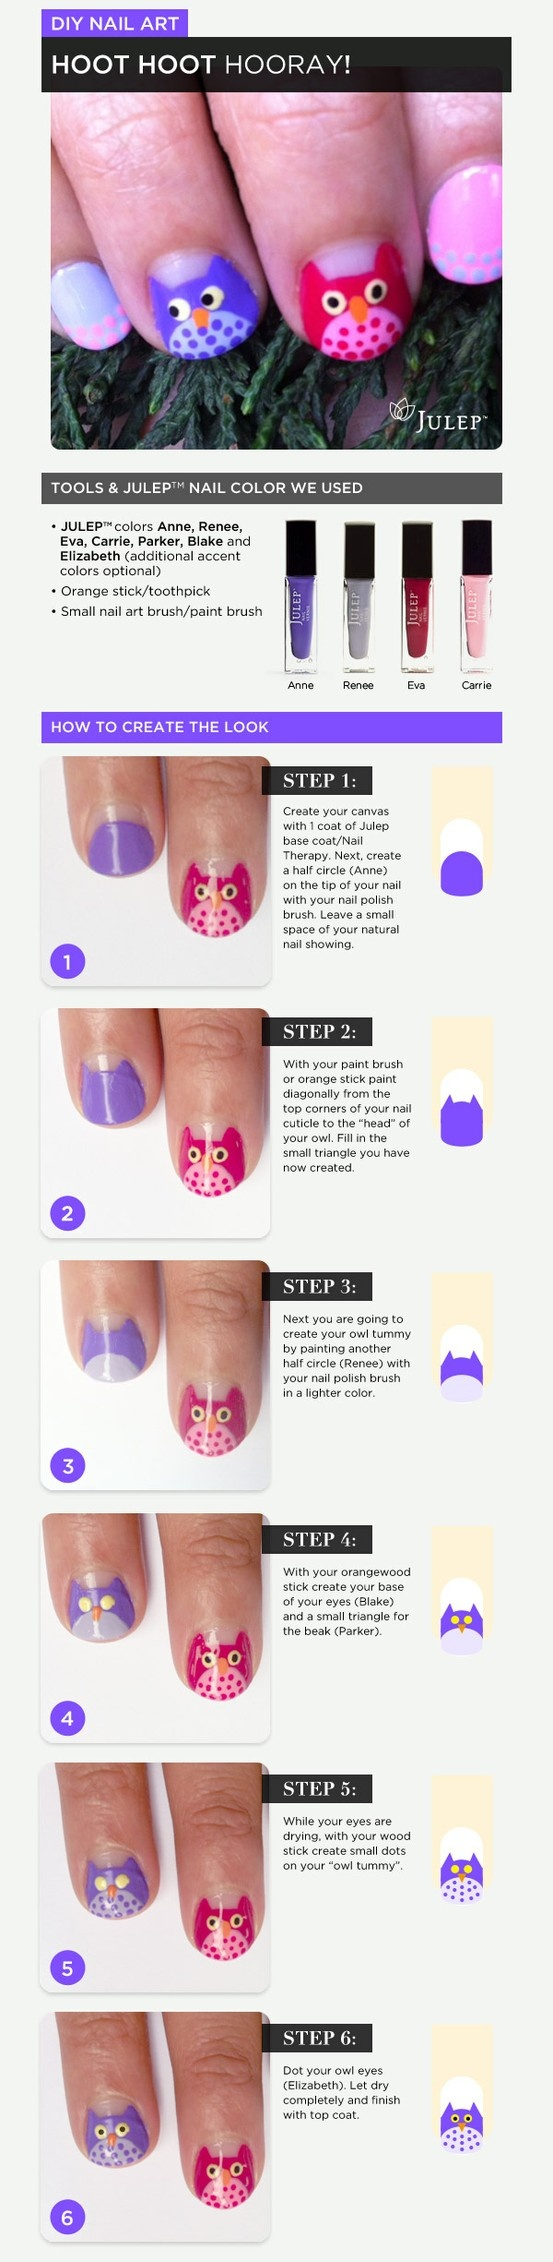 124 Best Nail Art Images On Pinterest Nail Decorations Nail